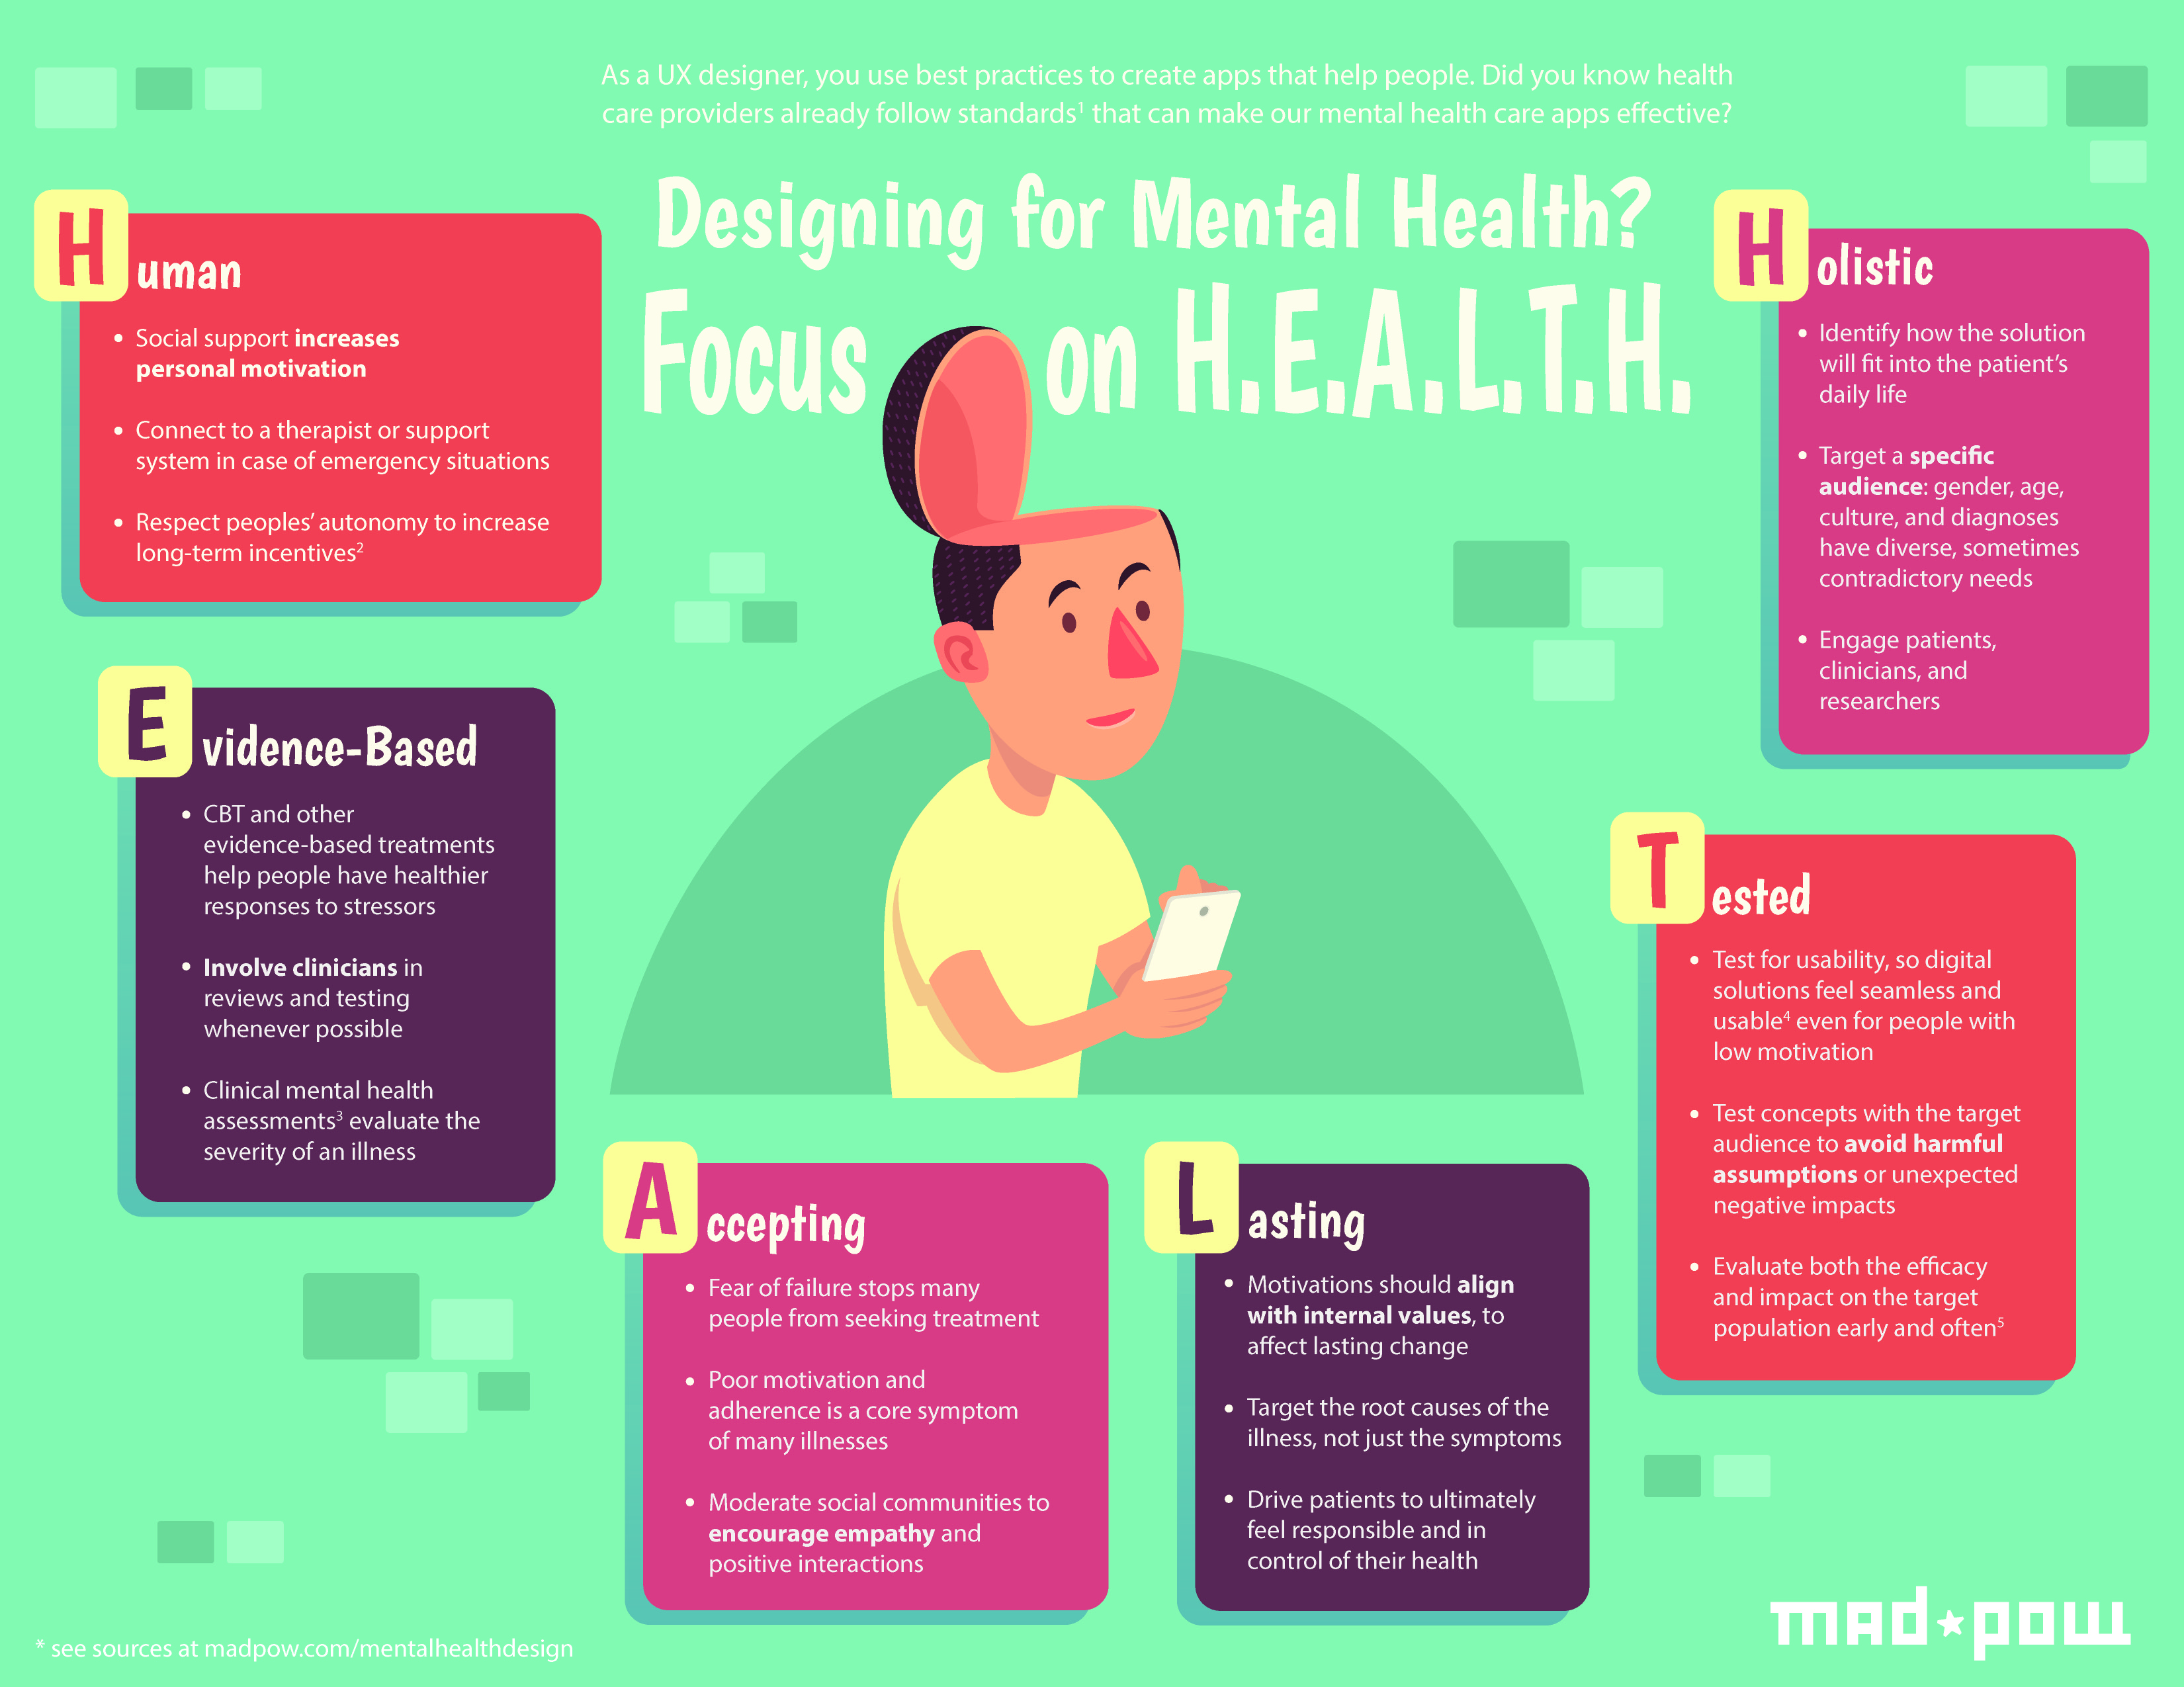 Guidelines To Designing Apps For Mental Health